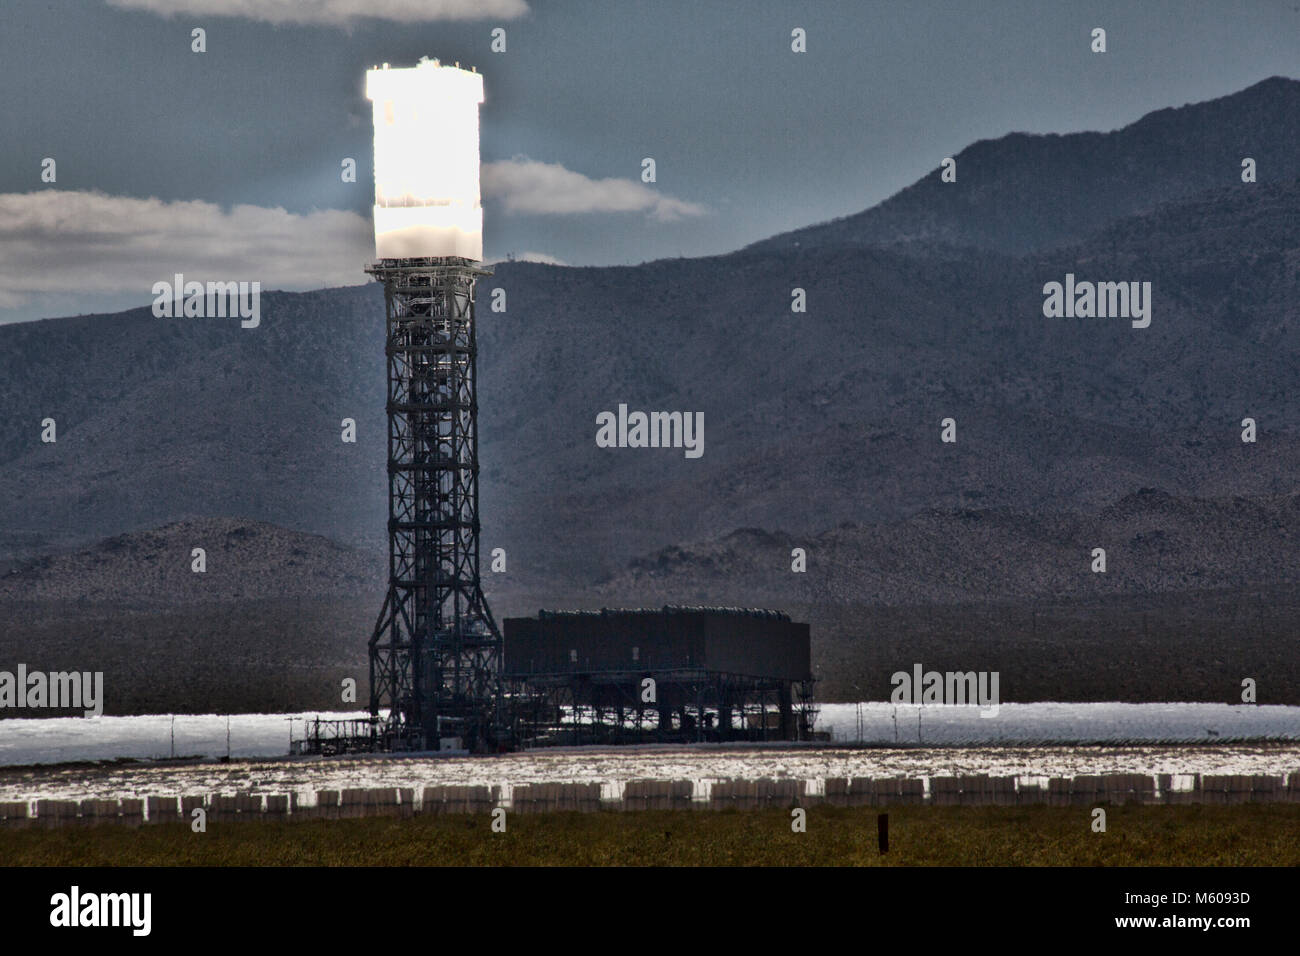 Views of Ivanpah Solar Power Facility in Nevada - Stock Image